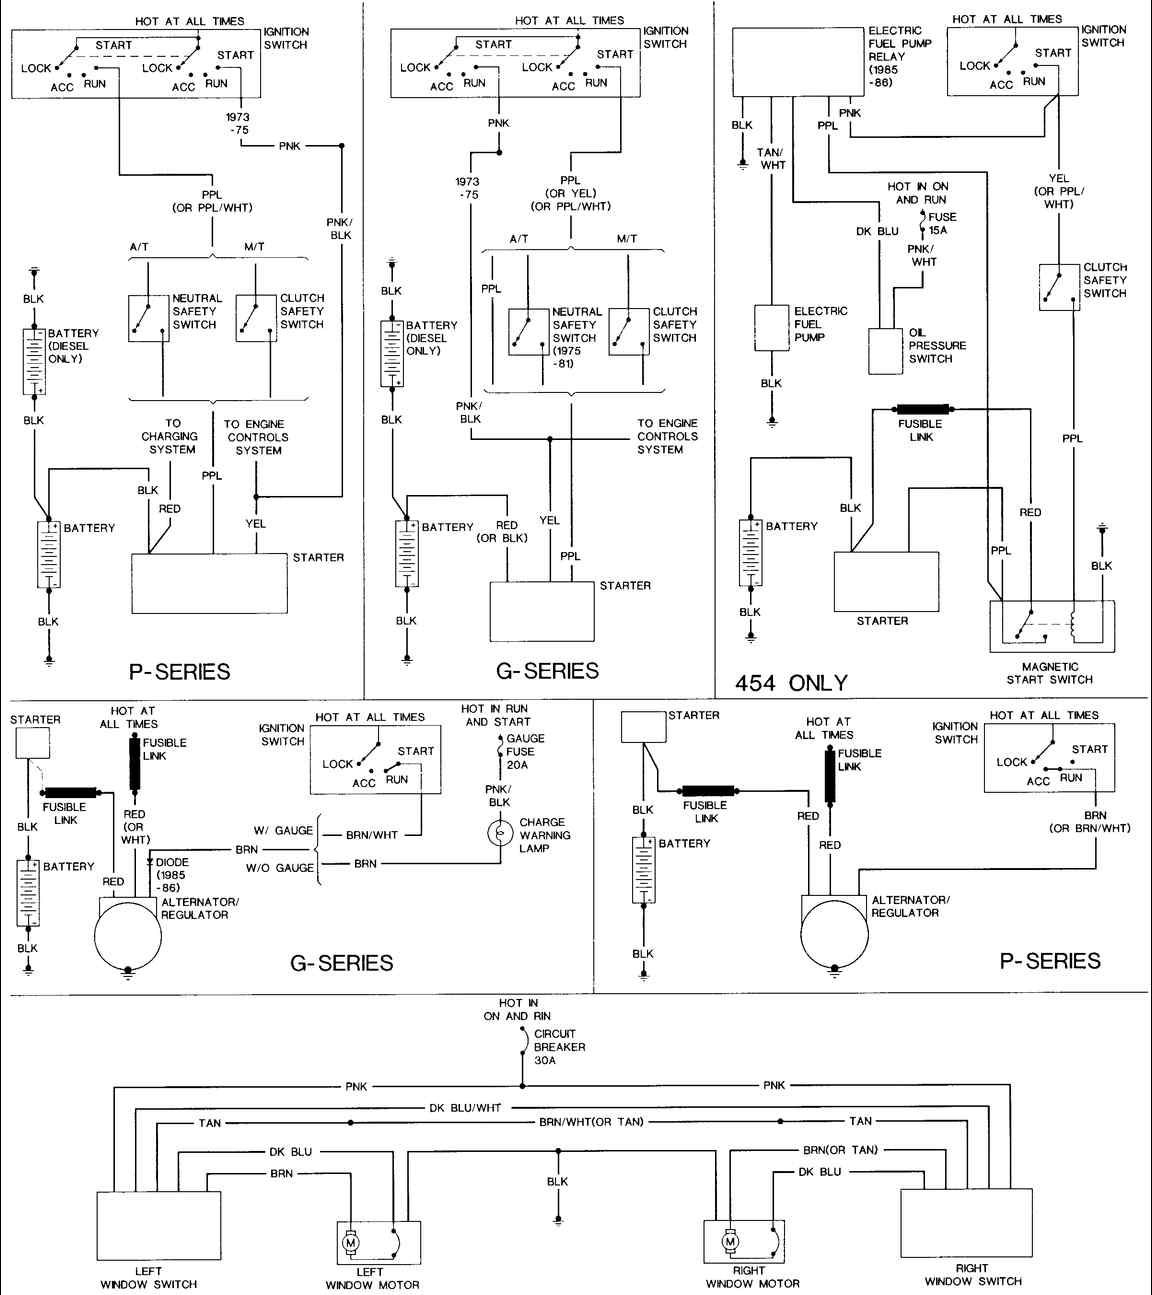 0c73623a181dc376dbb4777e2029d285 85 chevy truck wiring diagram 85 chevy van the steering column 1985 chevy truck wiring diagram at bayanpartner.co